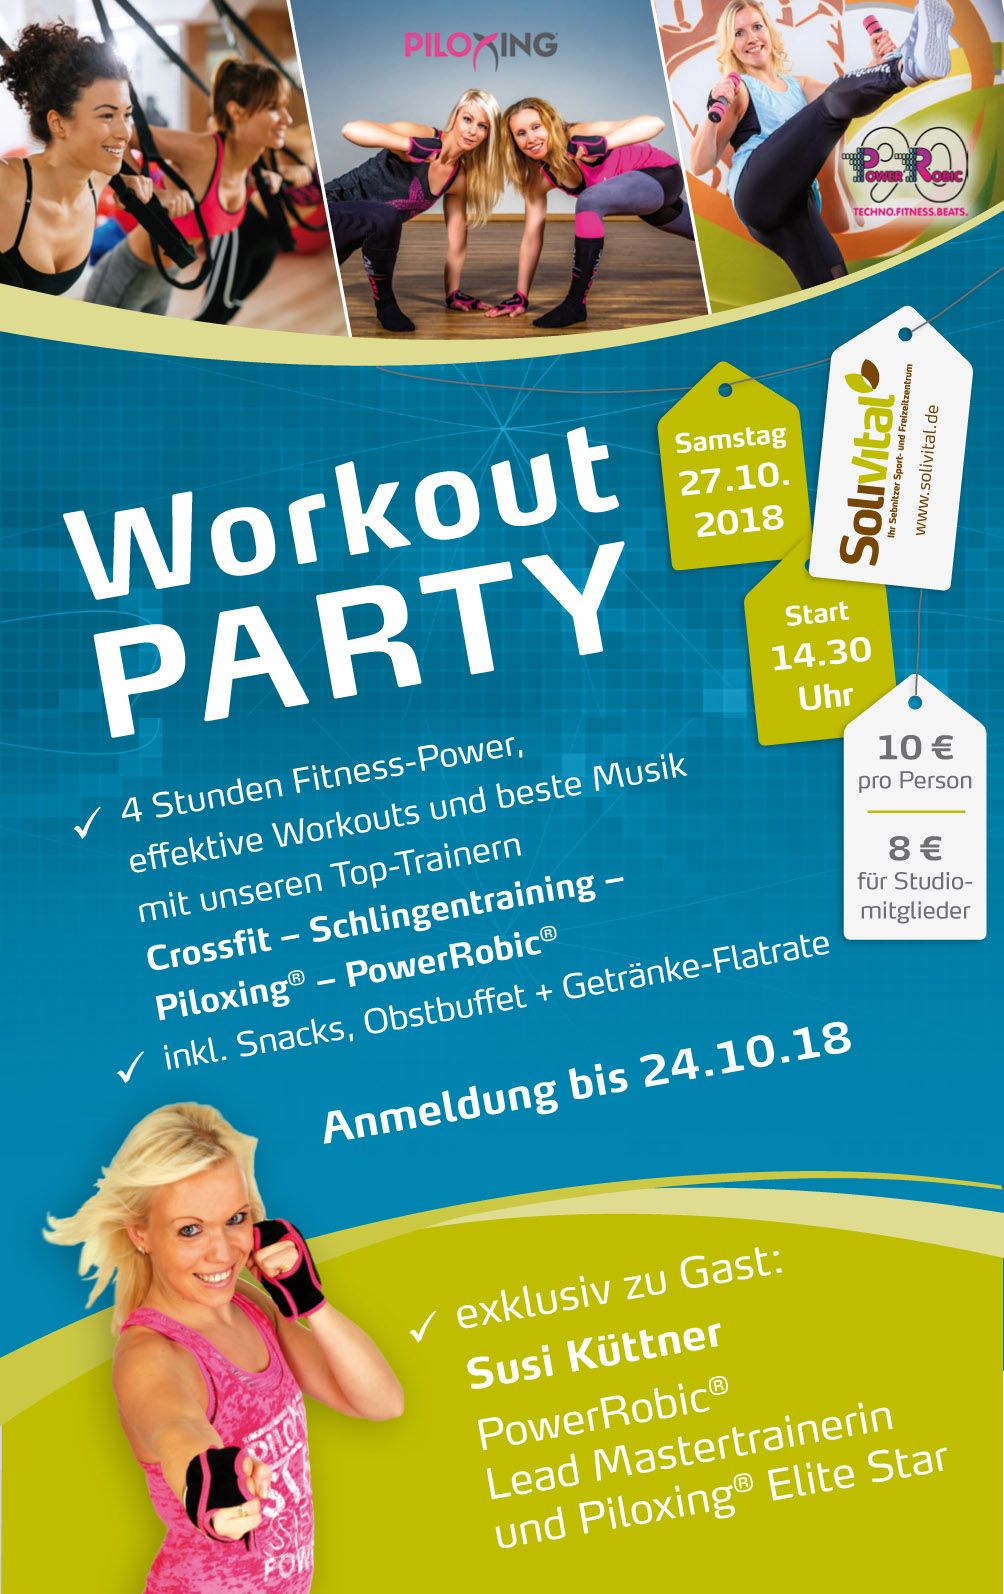 Workout-Party 2018